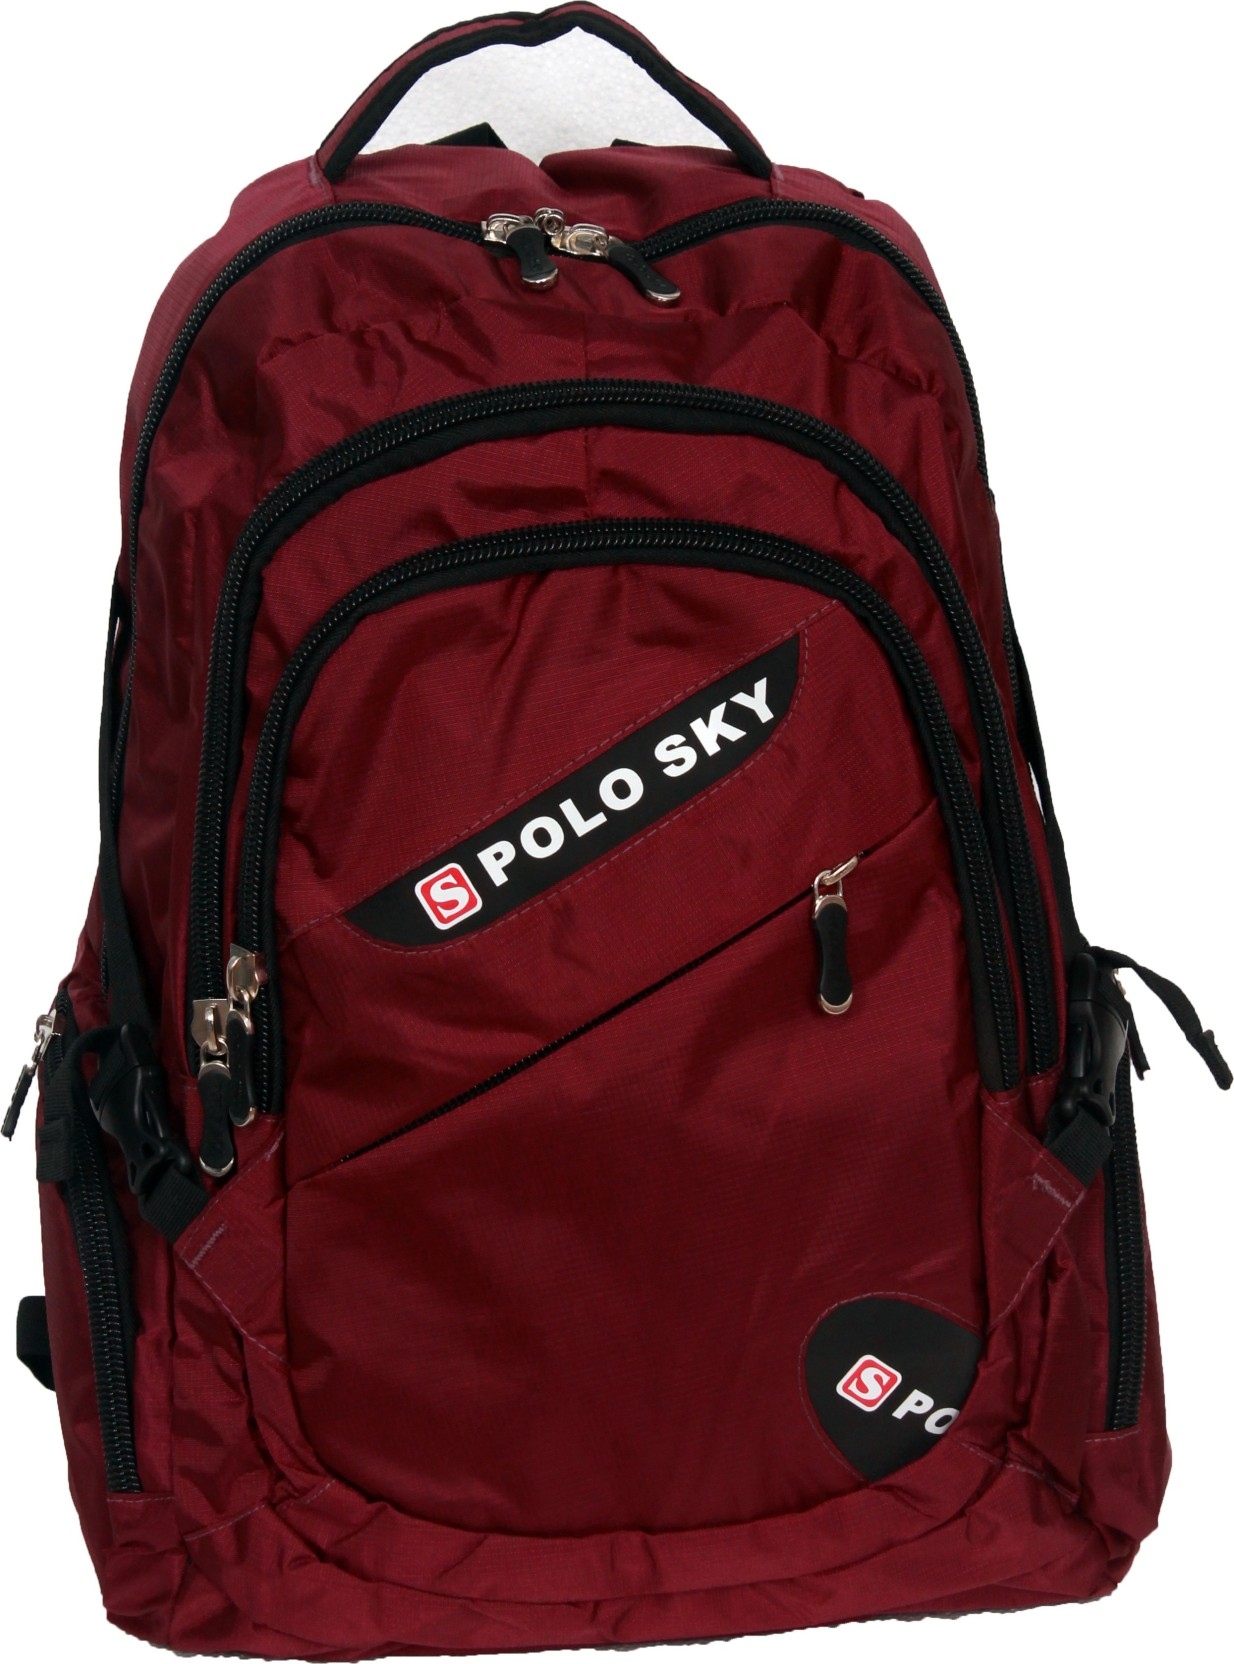 POLO SKY 19 inch Laptop Backpack Red C104 Price in India